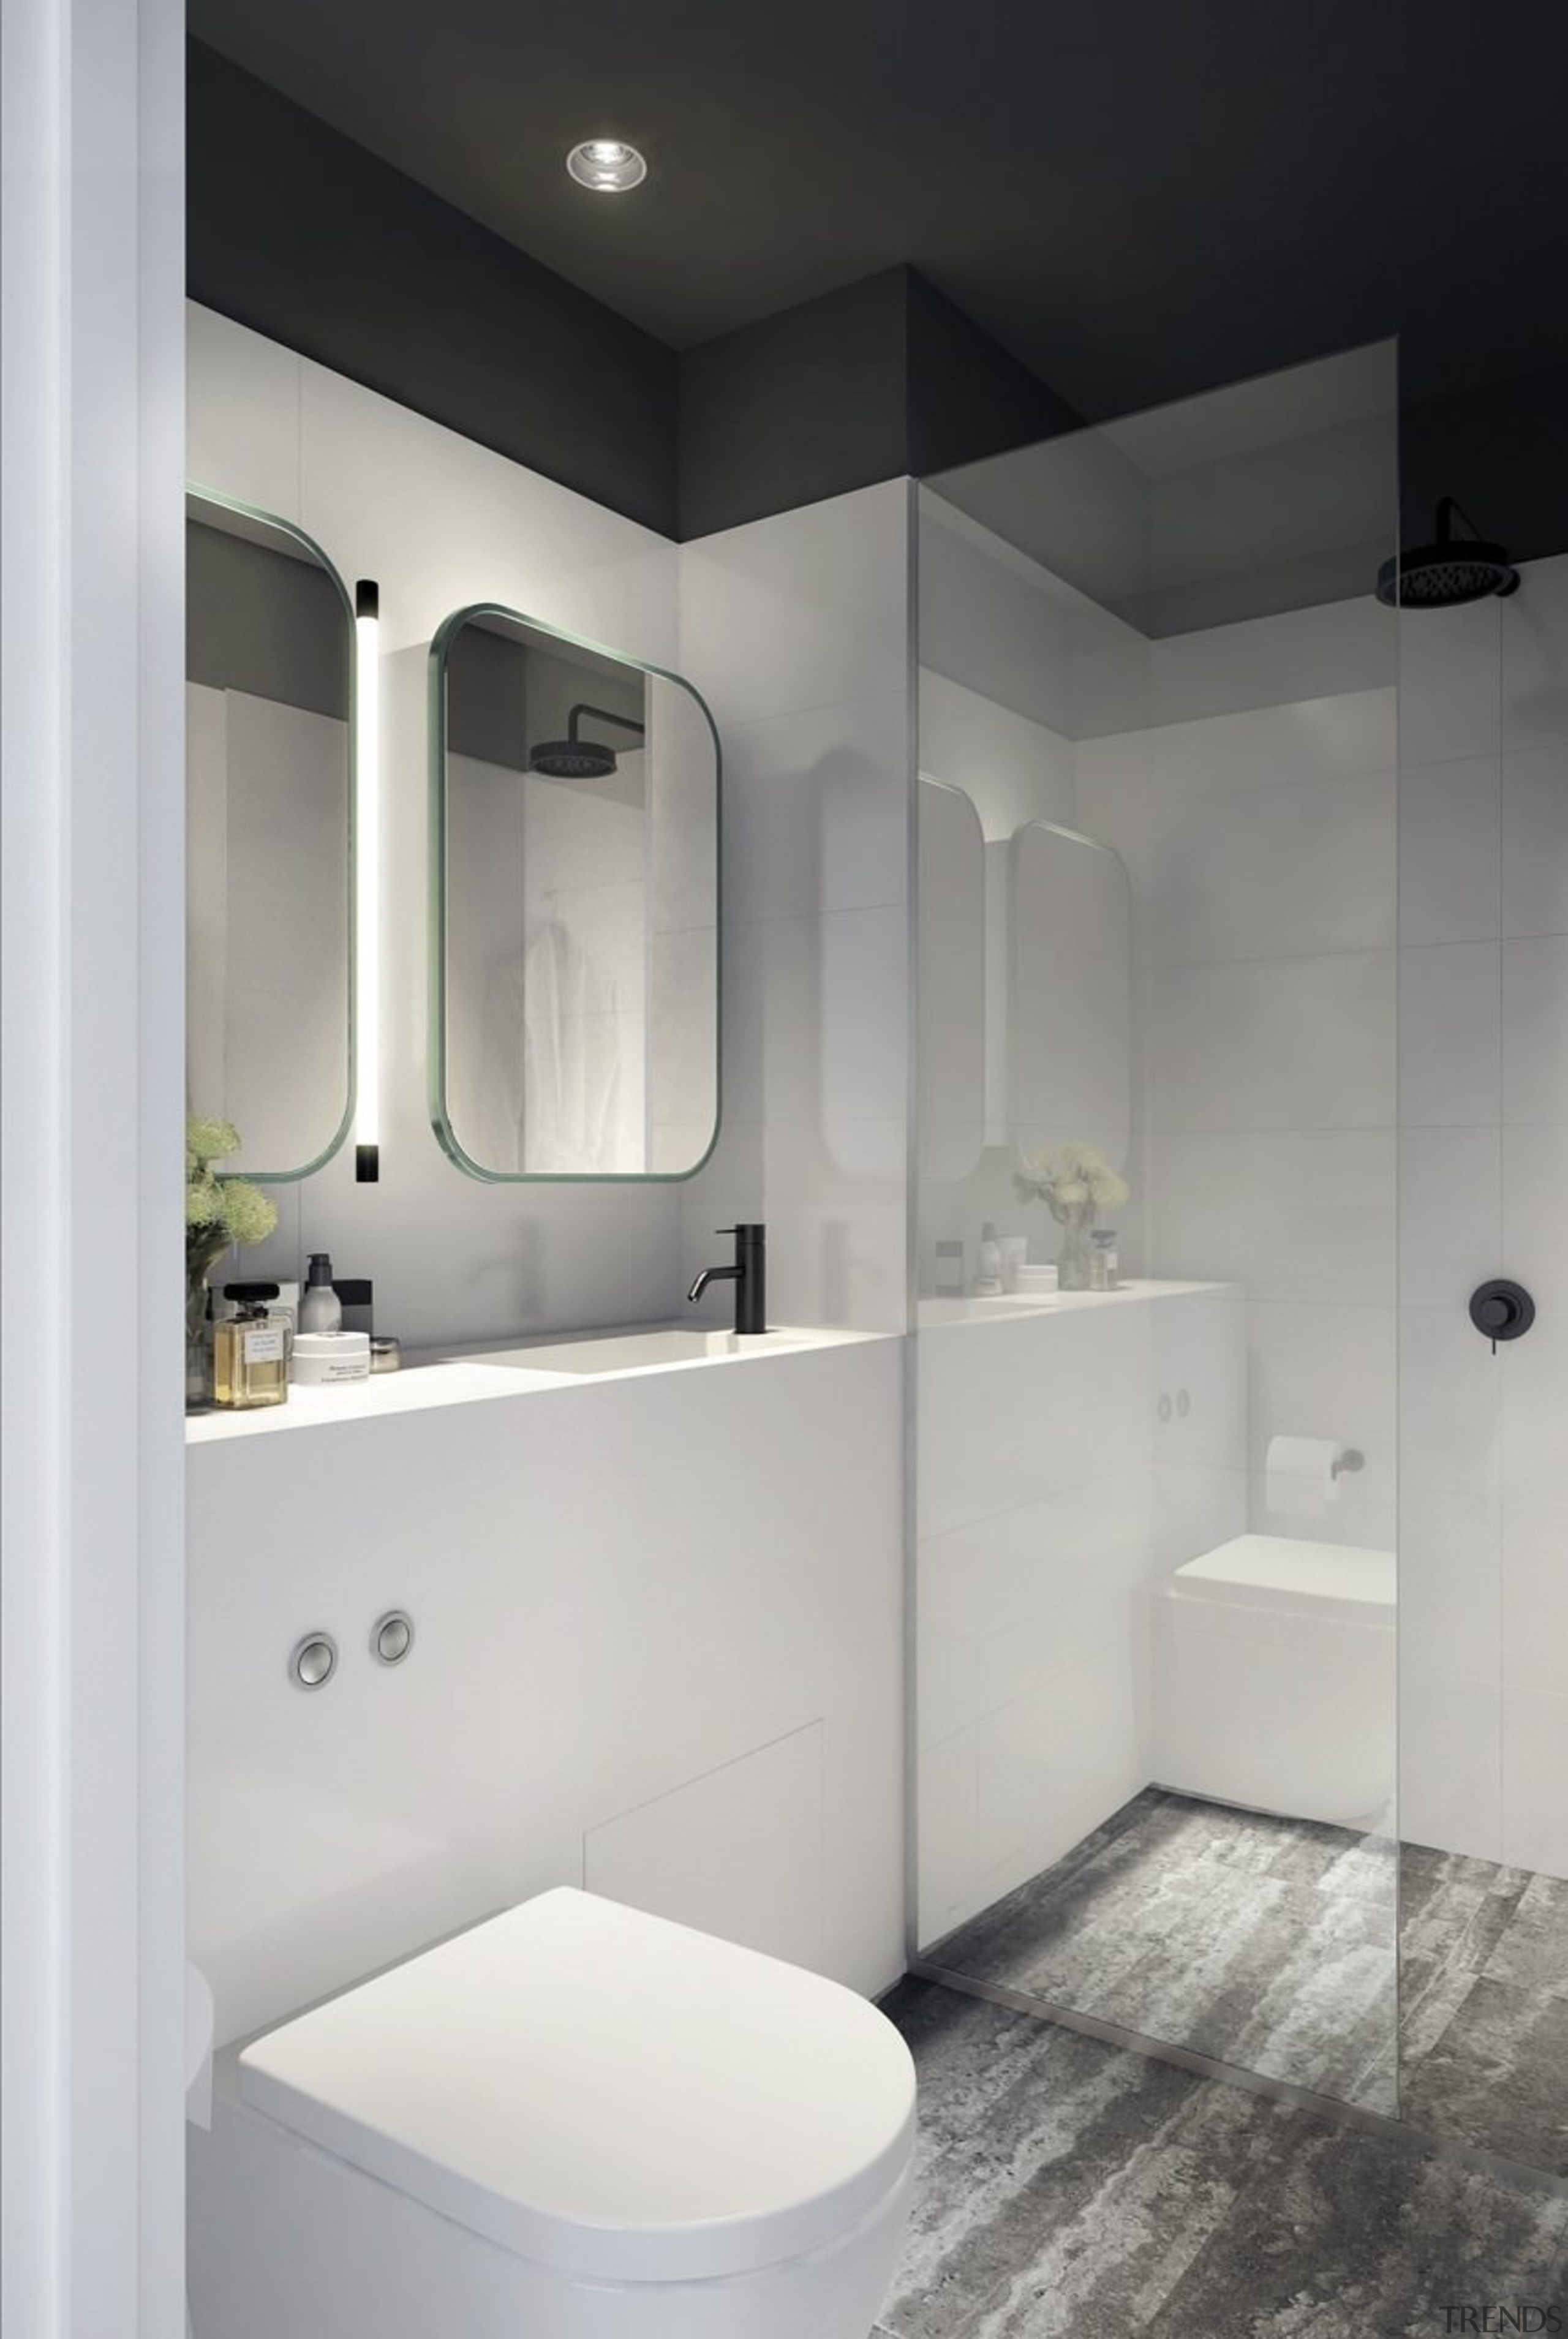 A bathroom with a clever system to hide bathroom, bathroom accessory, bathroom cabinet, ceiling, interior design, plumbing fixture, product design, room, sink, tap, gray